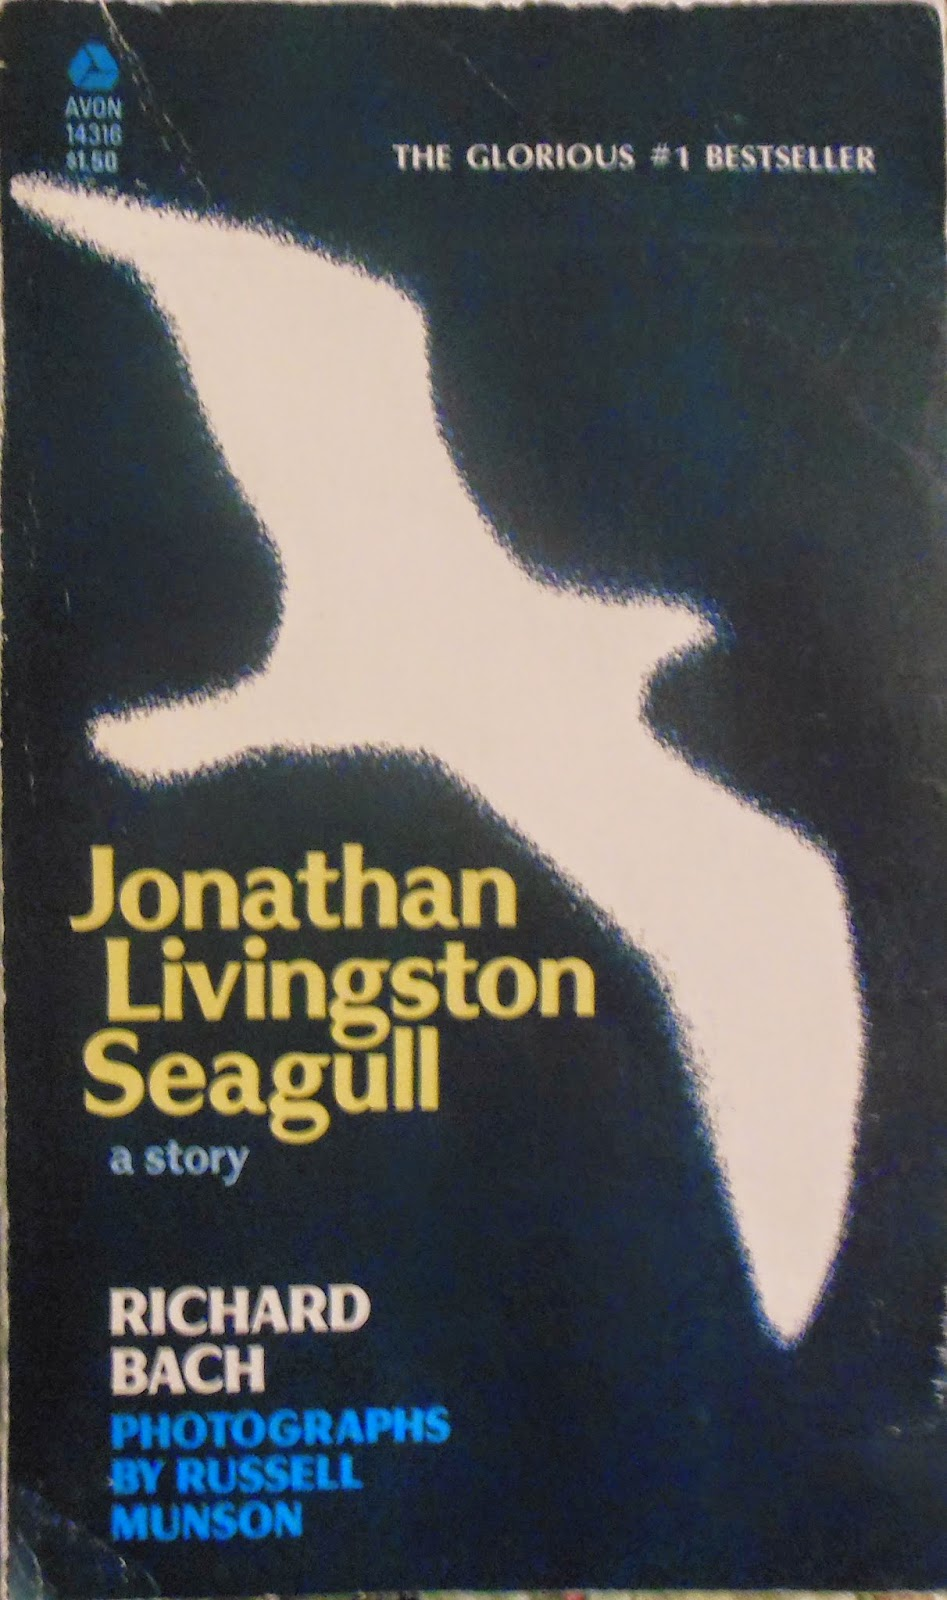 an analysis of jonathan livingston seagull by richard bach Richard bach has 54 books on goodreads with 362937 ratings richard bach's most popular book is jonathan livingston seagull.